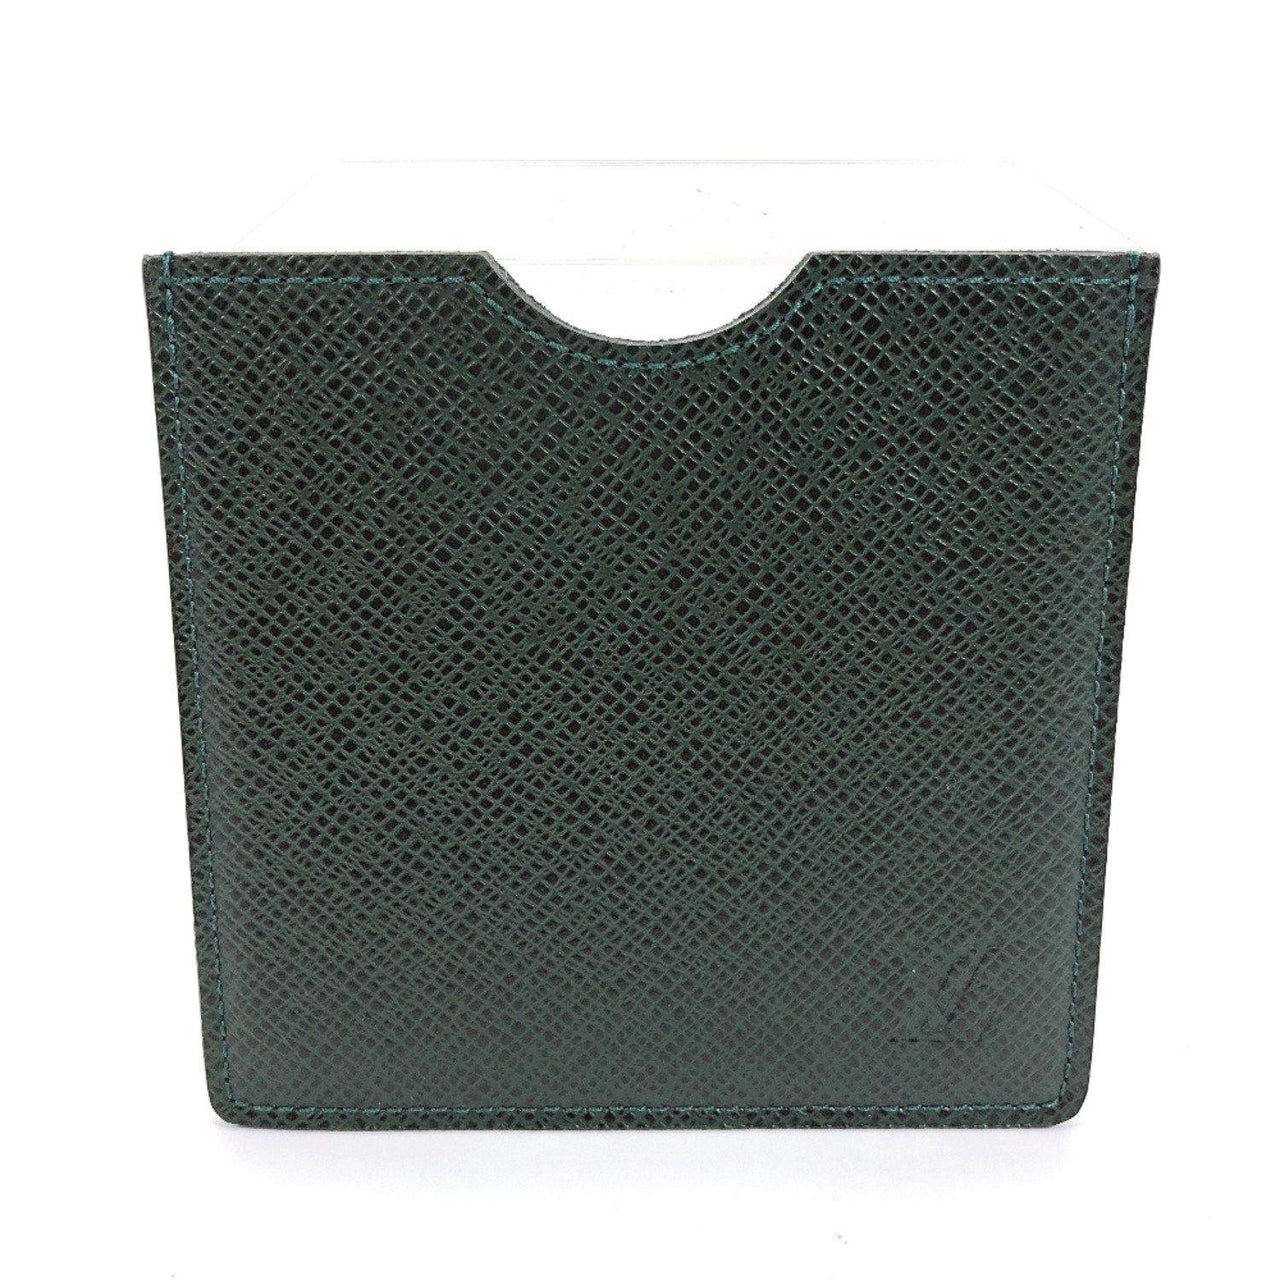 LOUIS VUITTON Other accessories M30344 Floppy disk case Taiga green unisex Used - JP-BRANDS.com